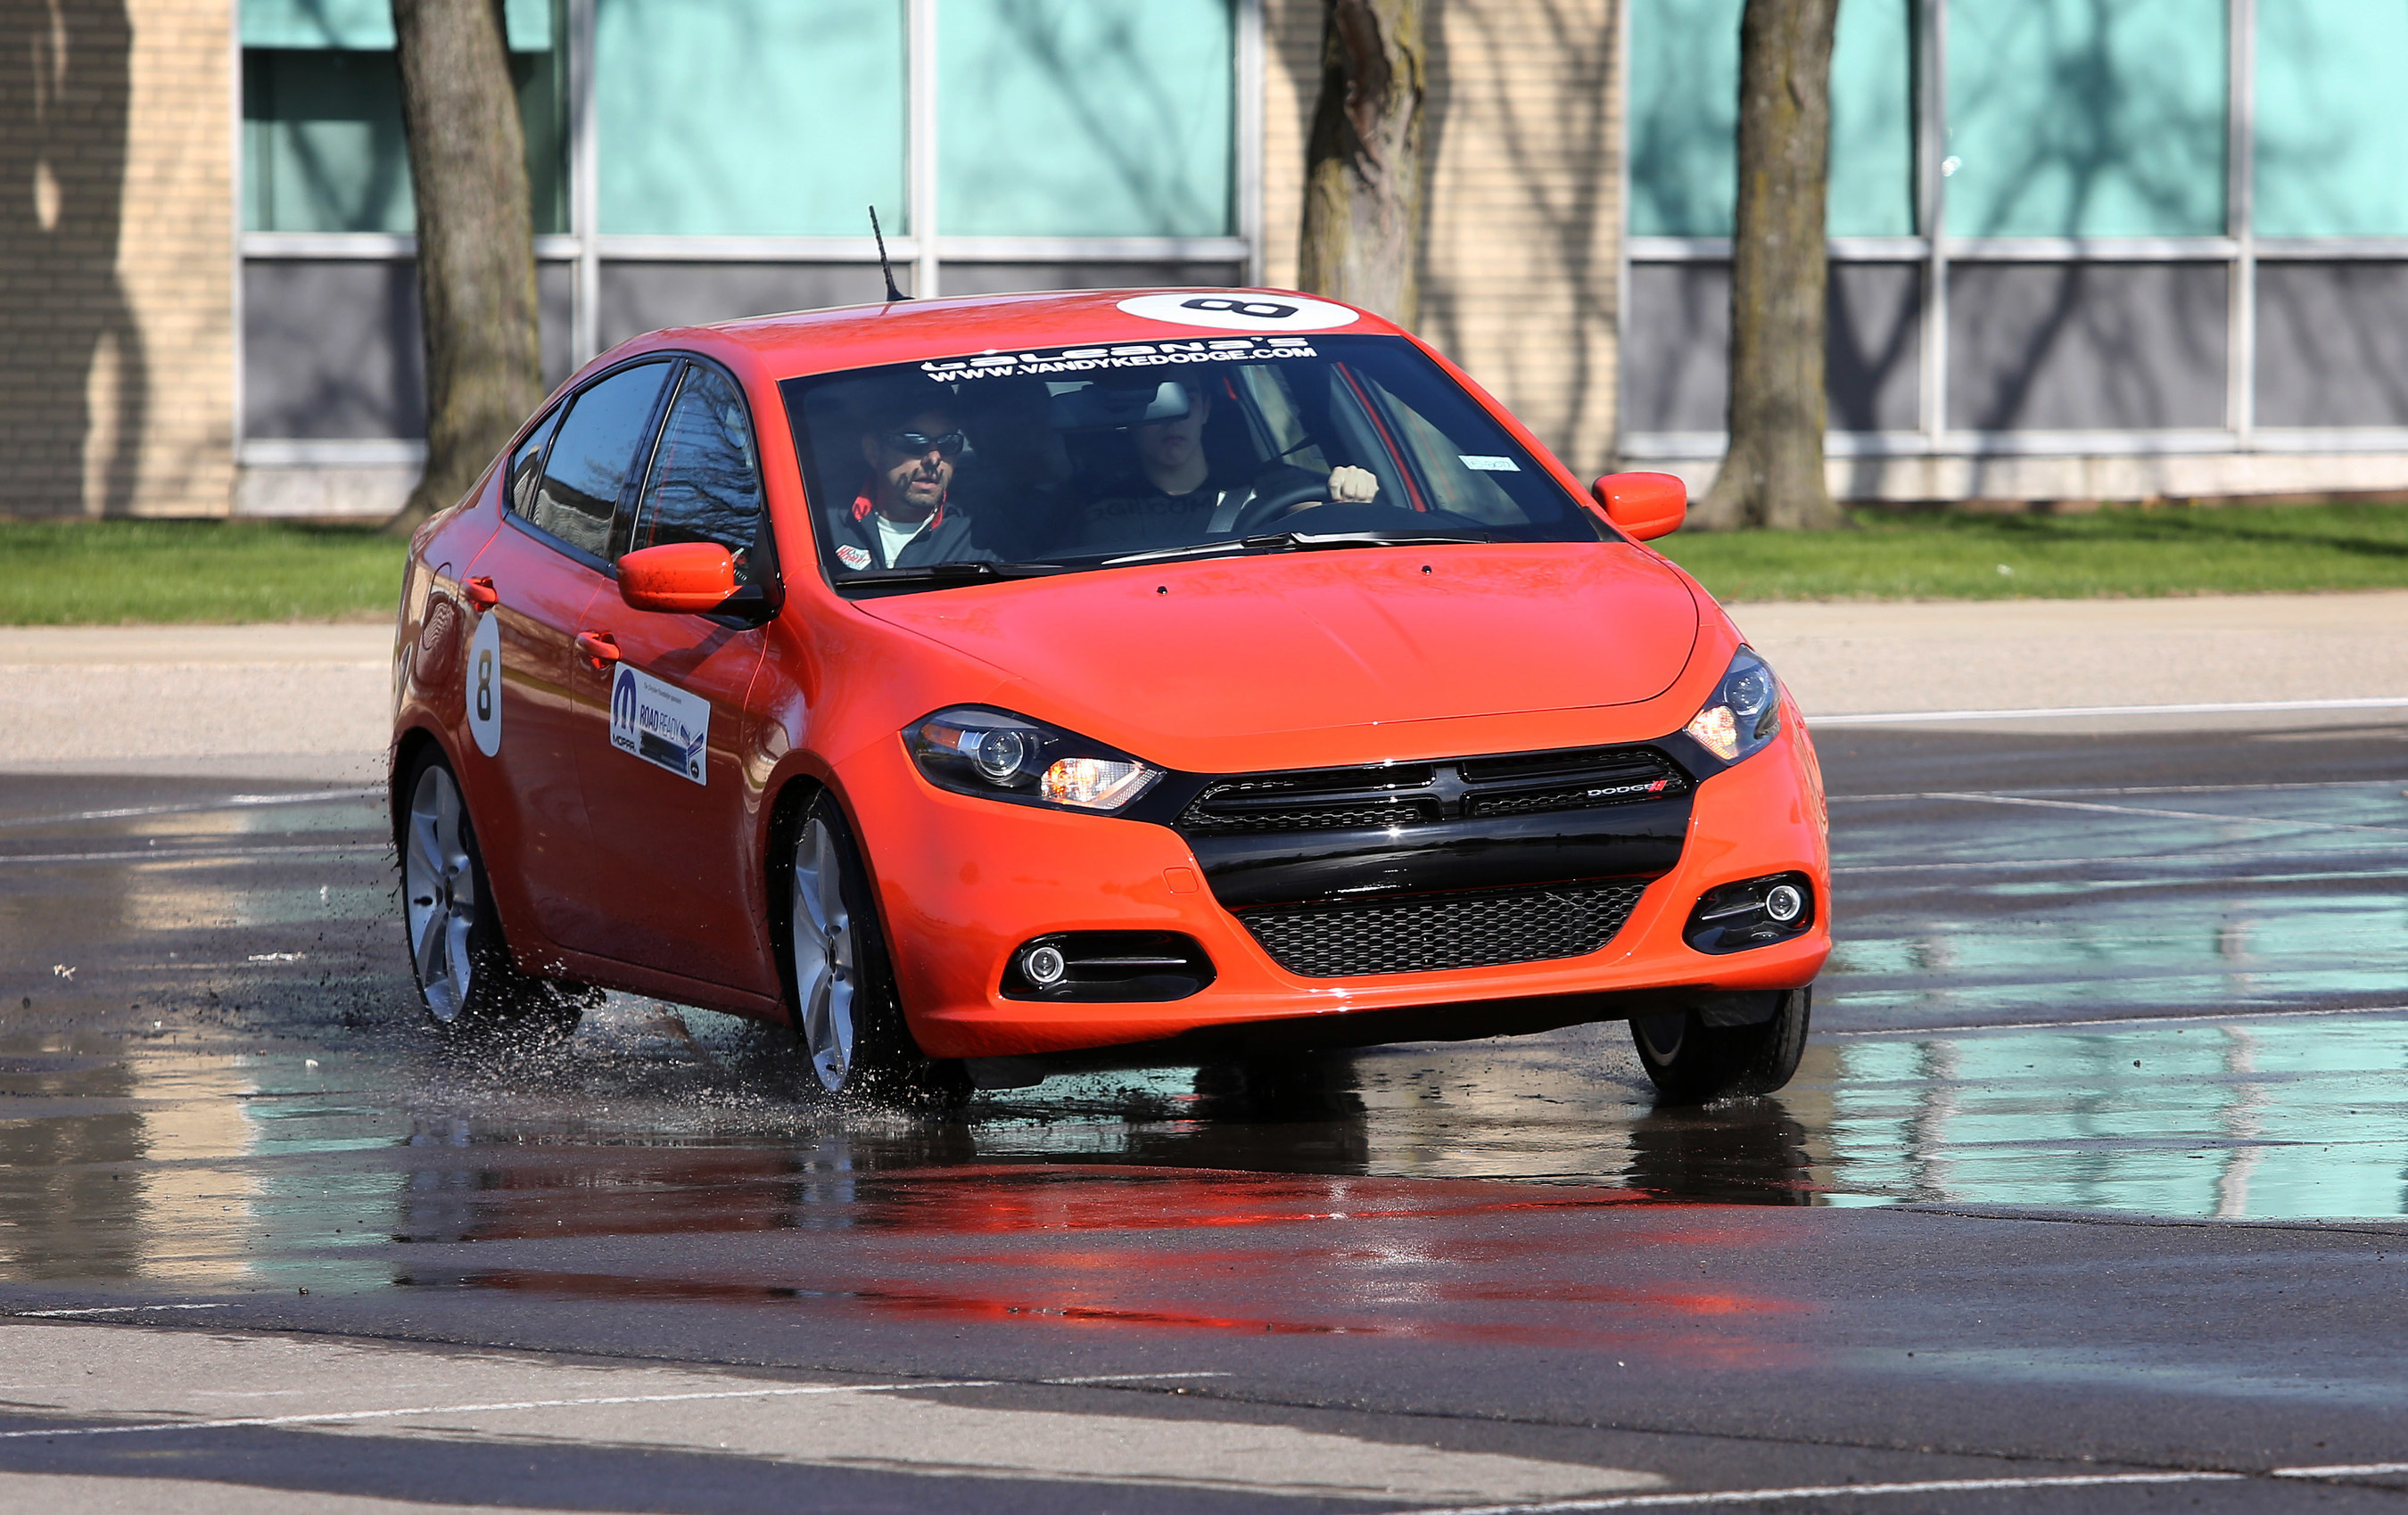 """The """"Mopar Road Ready Powered by Dodge"""" teen defensive driving program is returning to Center Line, Michigan, for its third and fourth stops in the Metro Detroit area. Parents can register their teens for events on April 30-May 1 or May 14-15 at www.mopar.com/road-ready/register."""